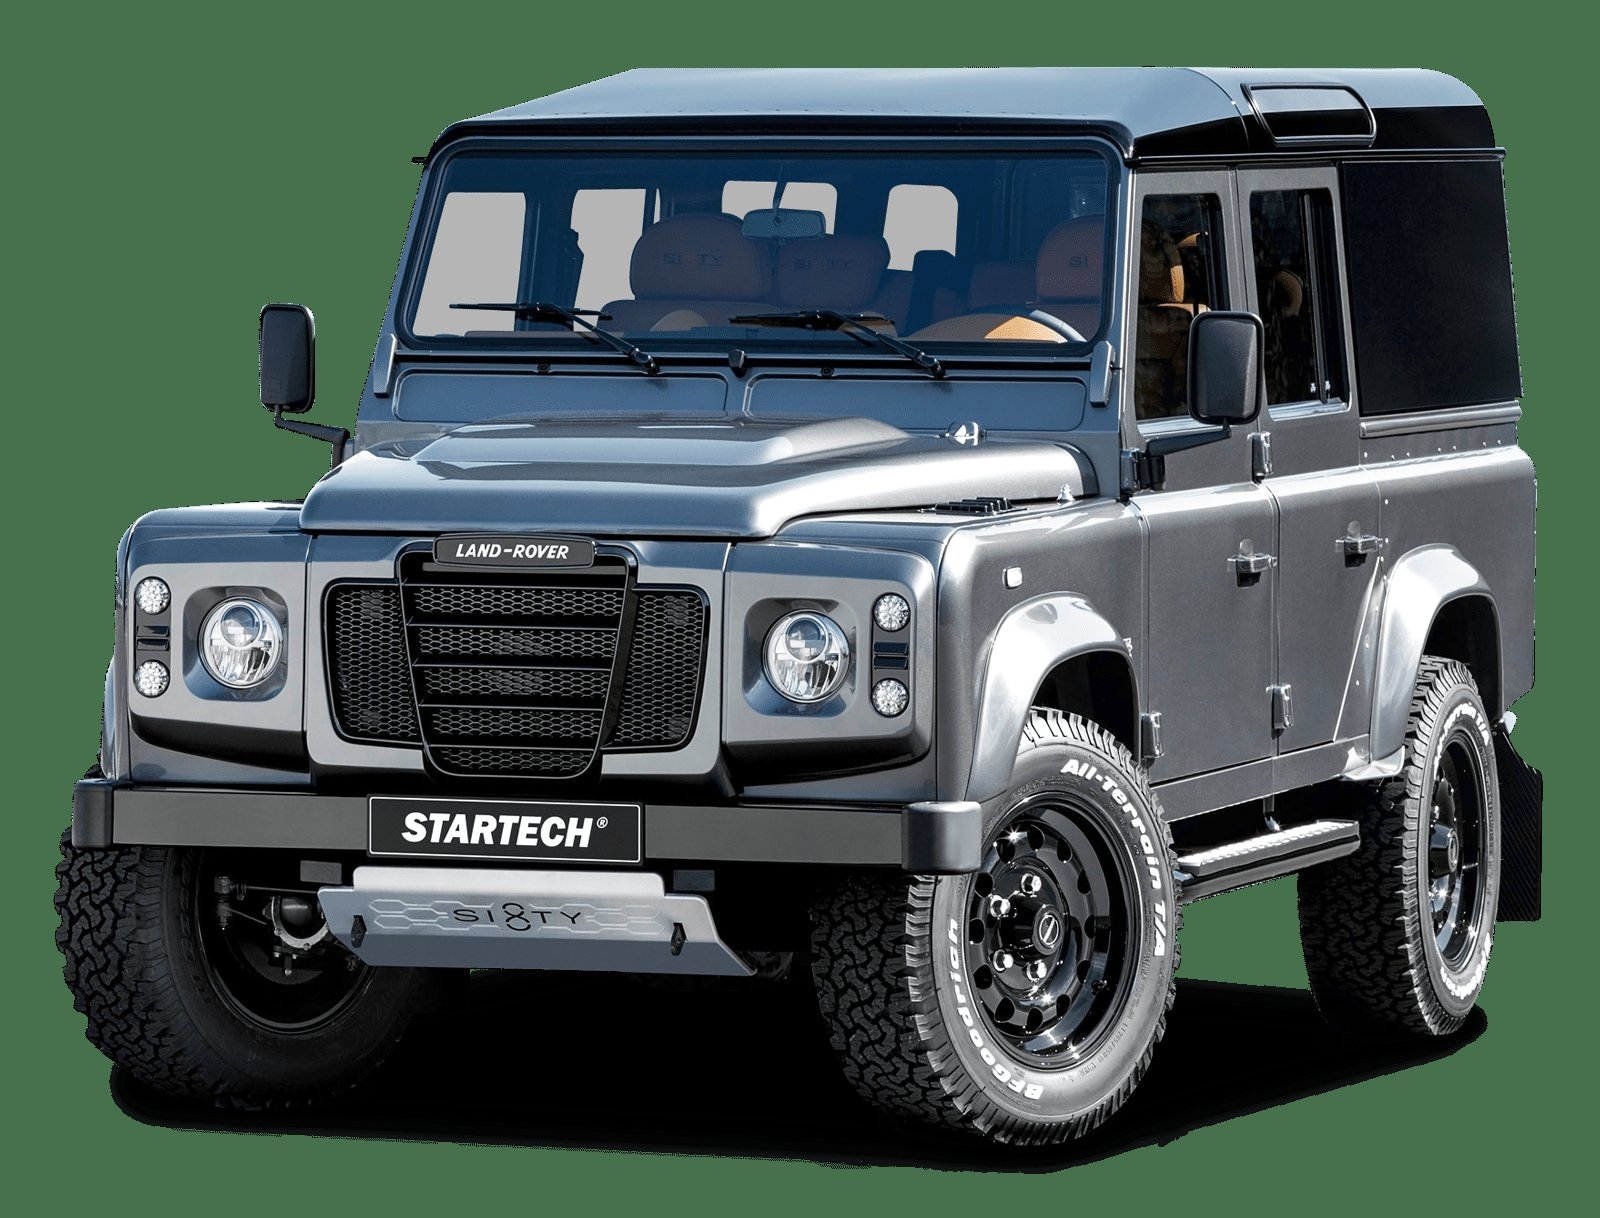 New Startech Land Rover Defender Sixty8 Car Png Image Pngpix On This Month